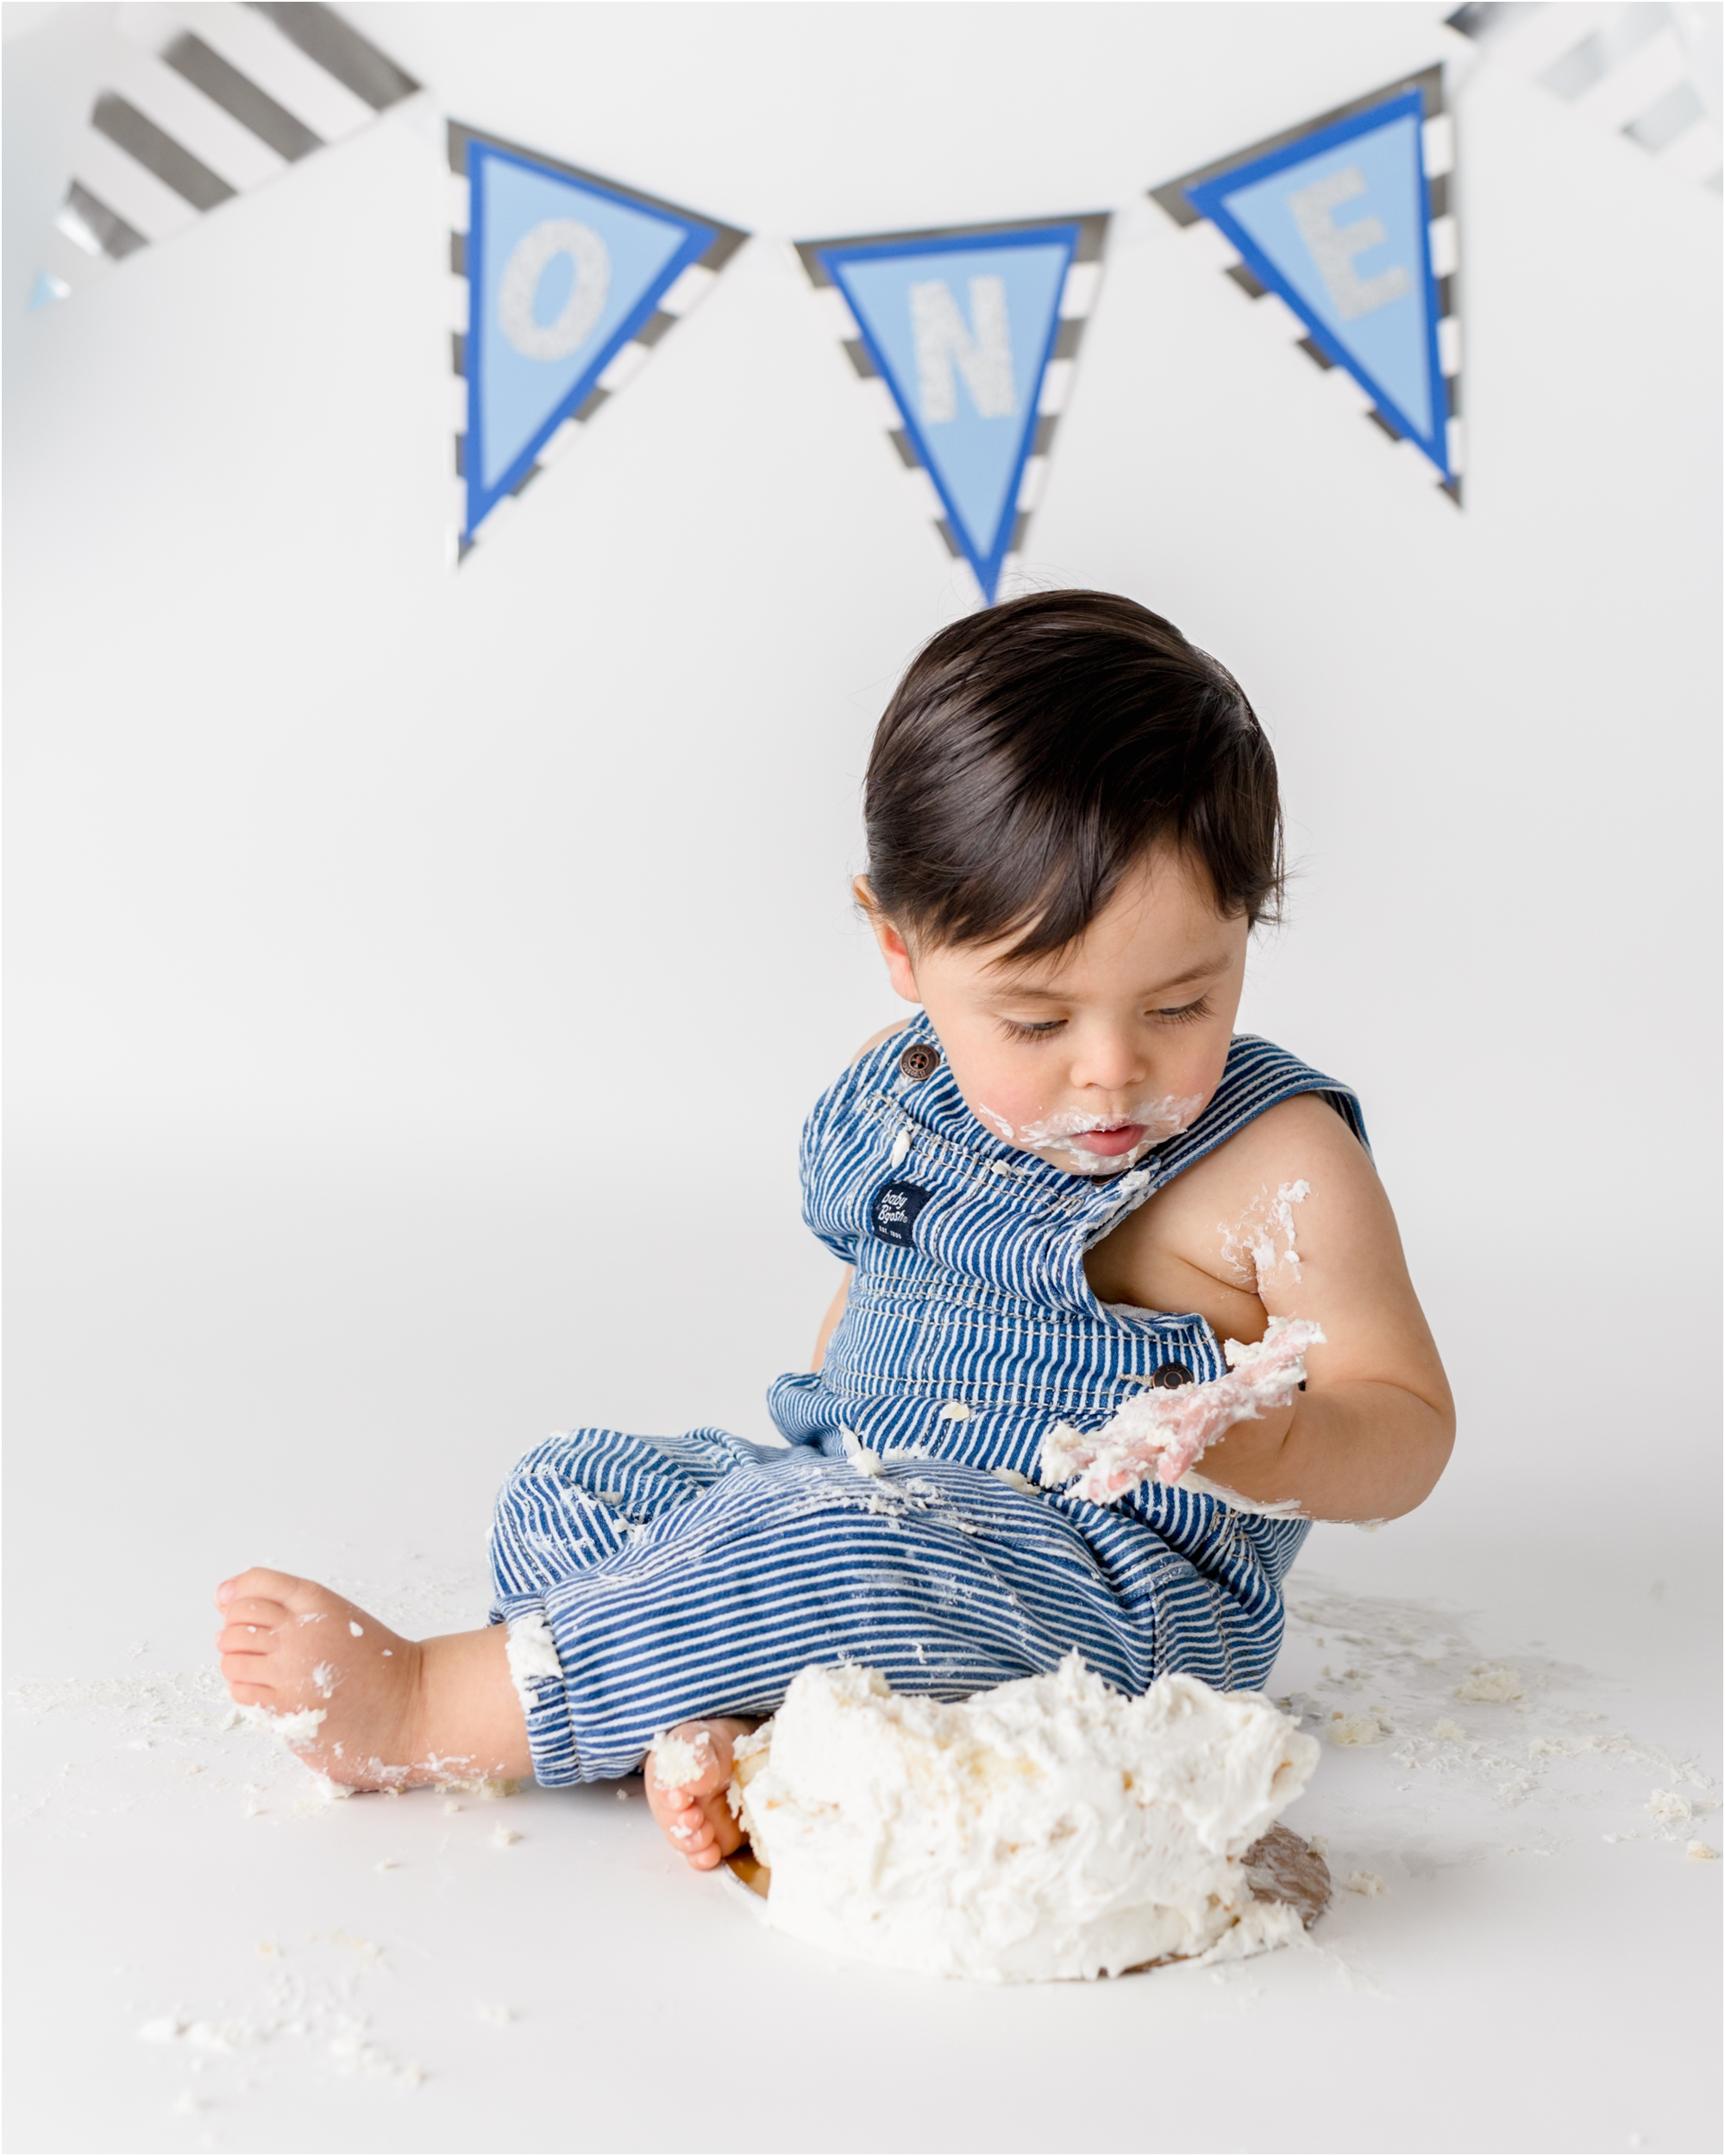 Baby boy in blue striped overalls looking at frosting on hands. Photo by Lifetime of Clicks Photography.